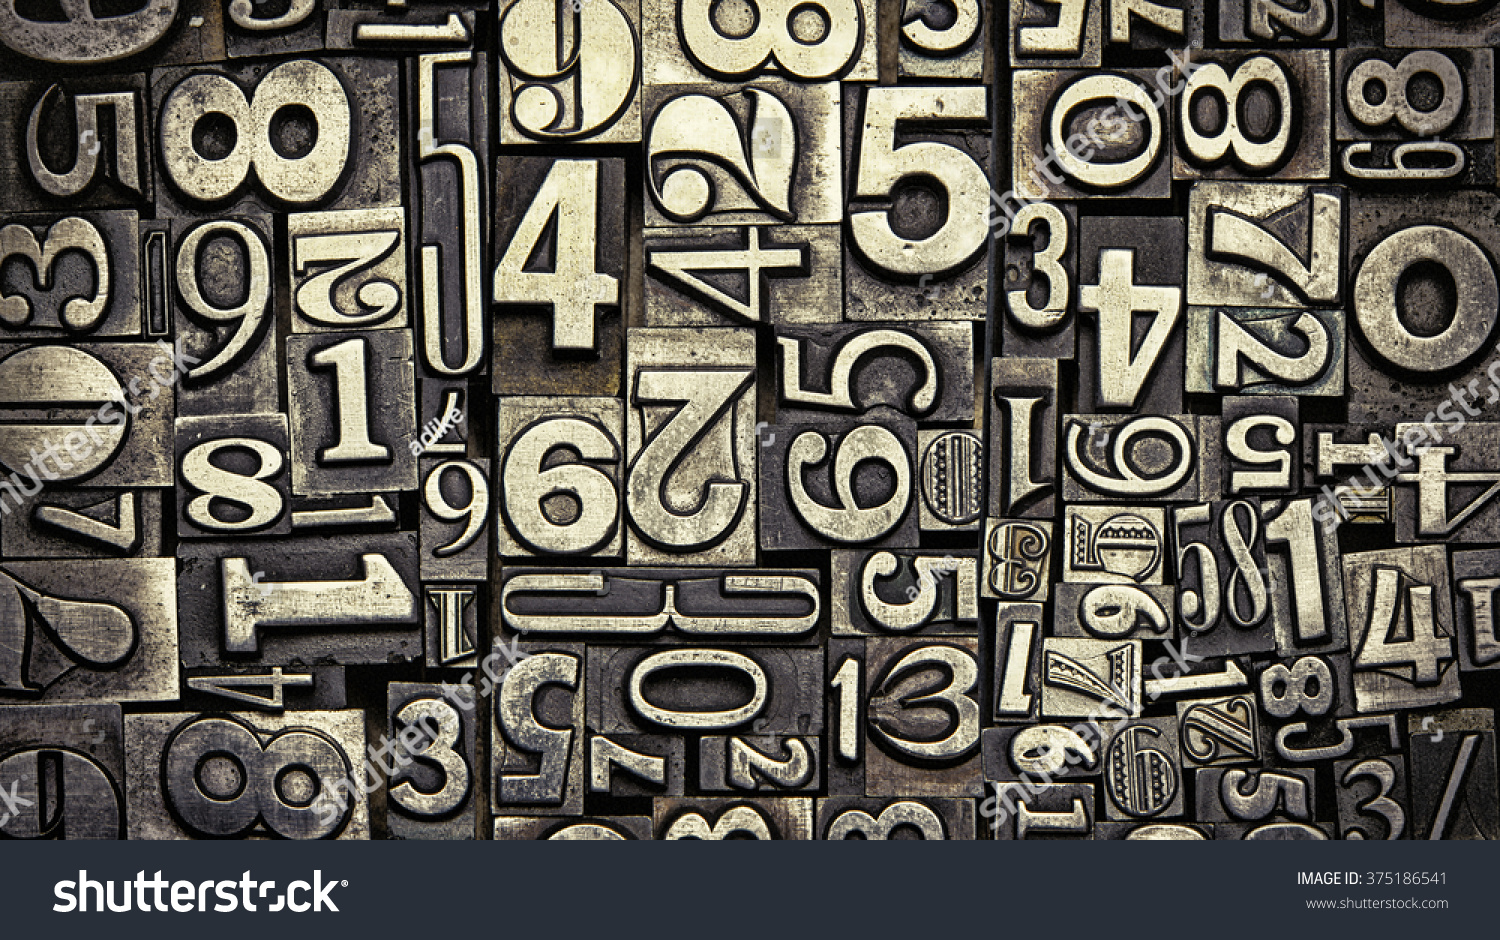 Old Metal Letters Mesmerizing Old Metal Letters Stock Photo 375186541  Shutterstock Review